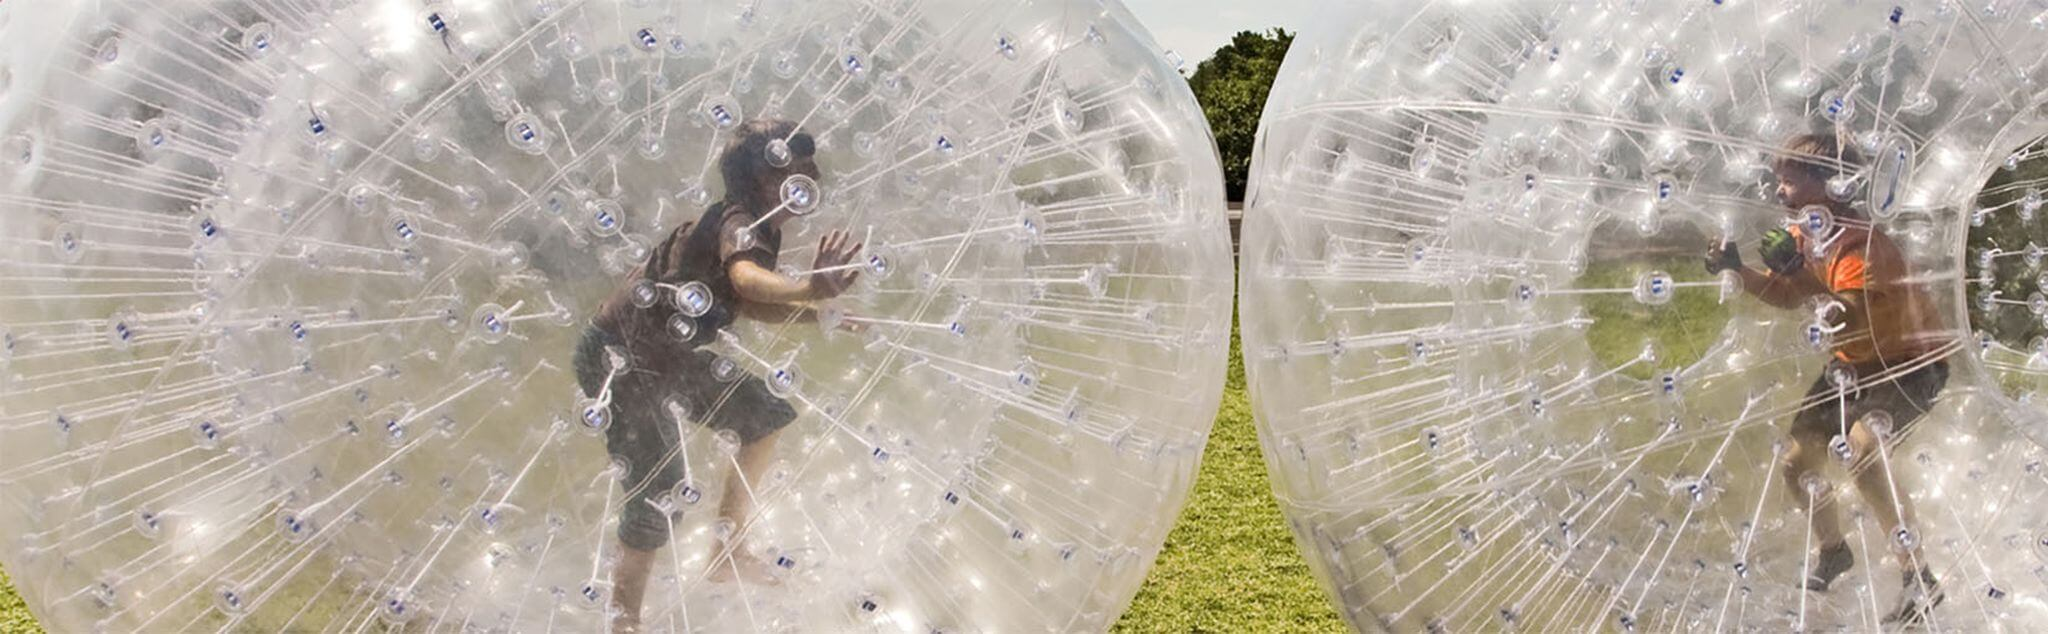 Zorbing in Madrid